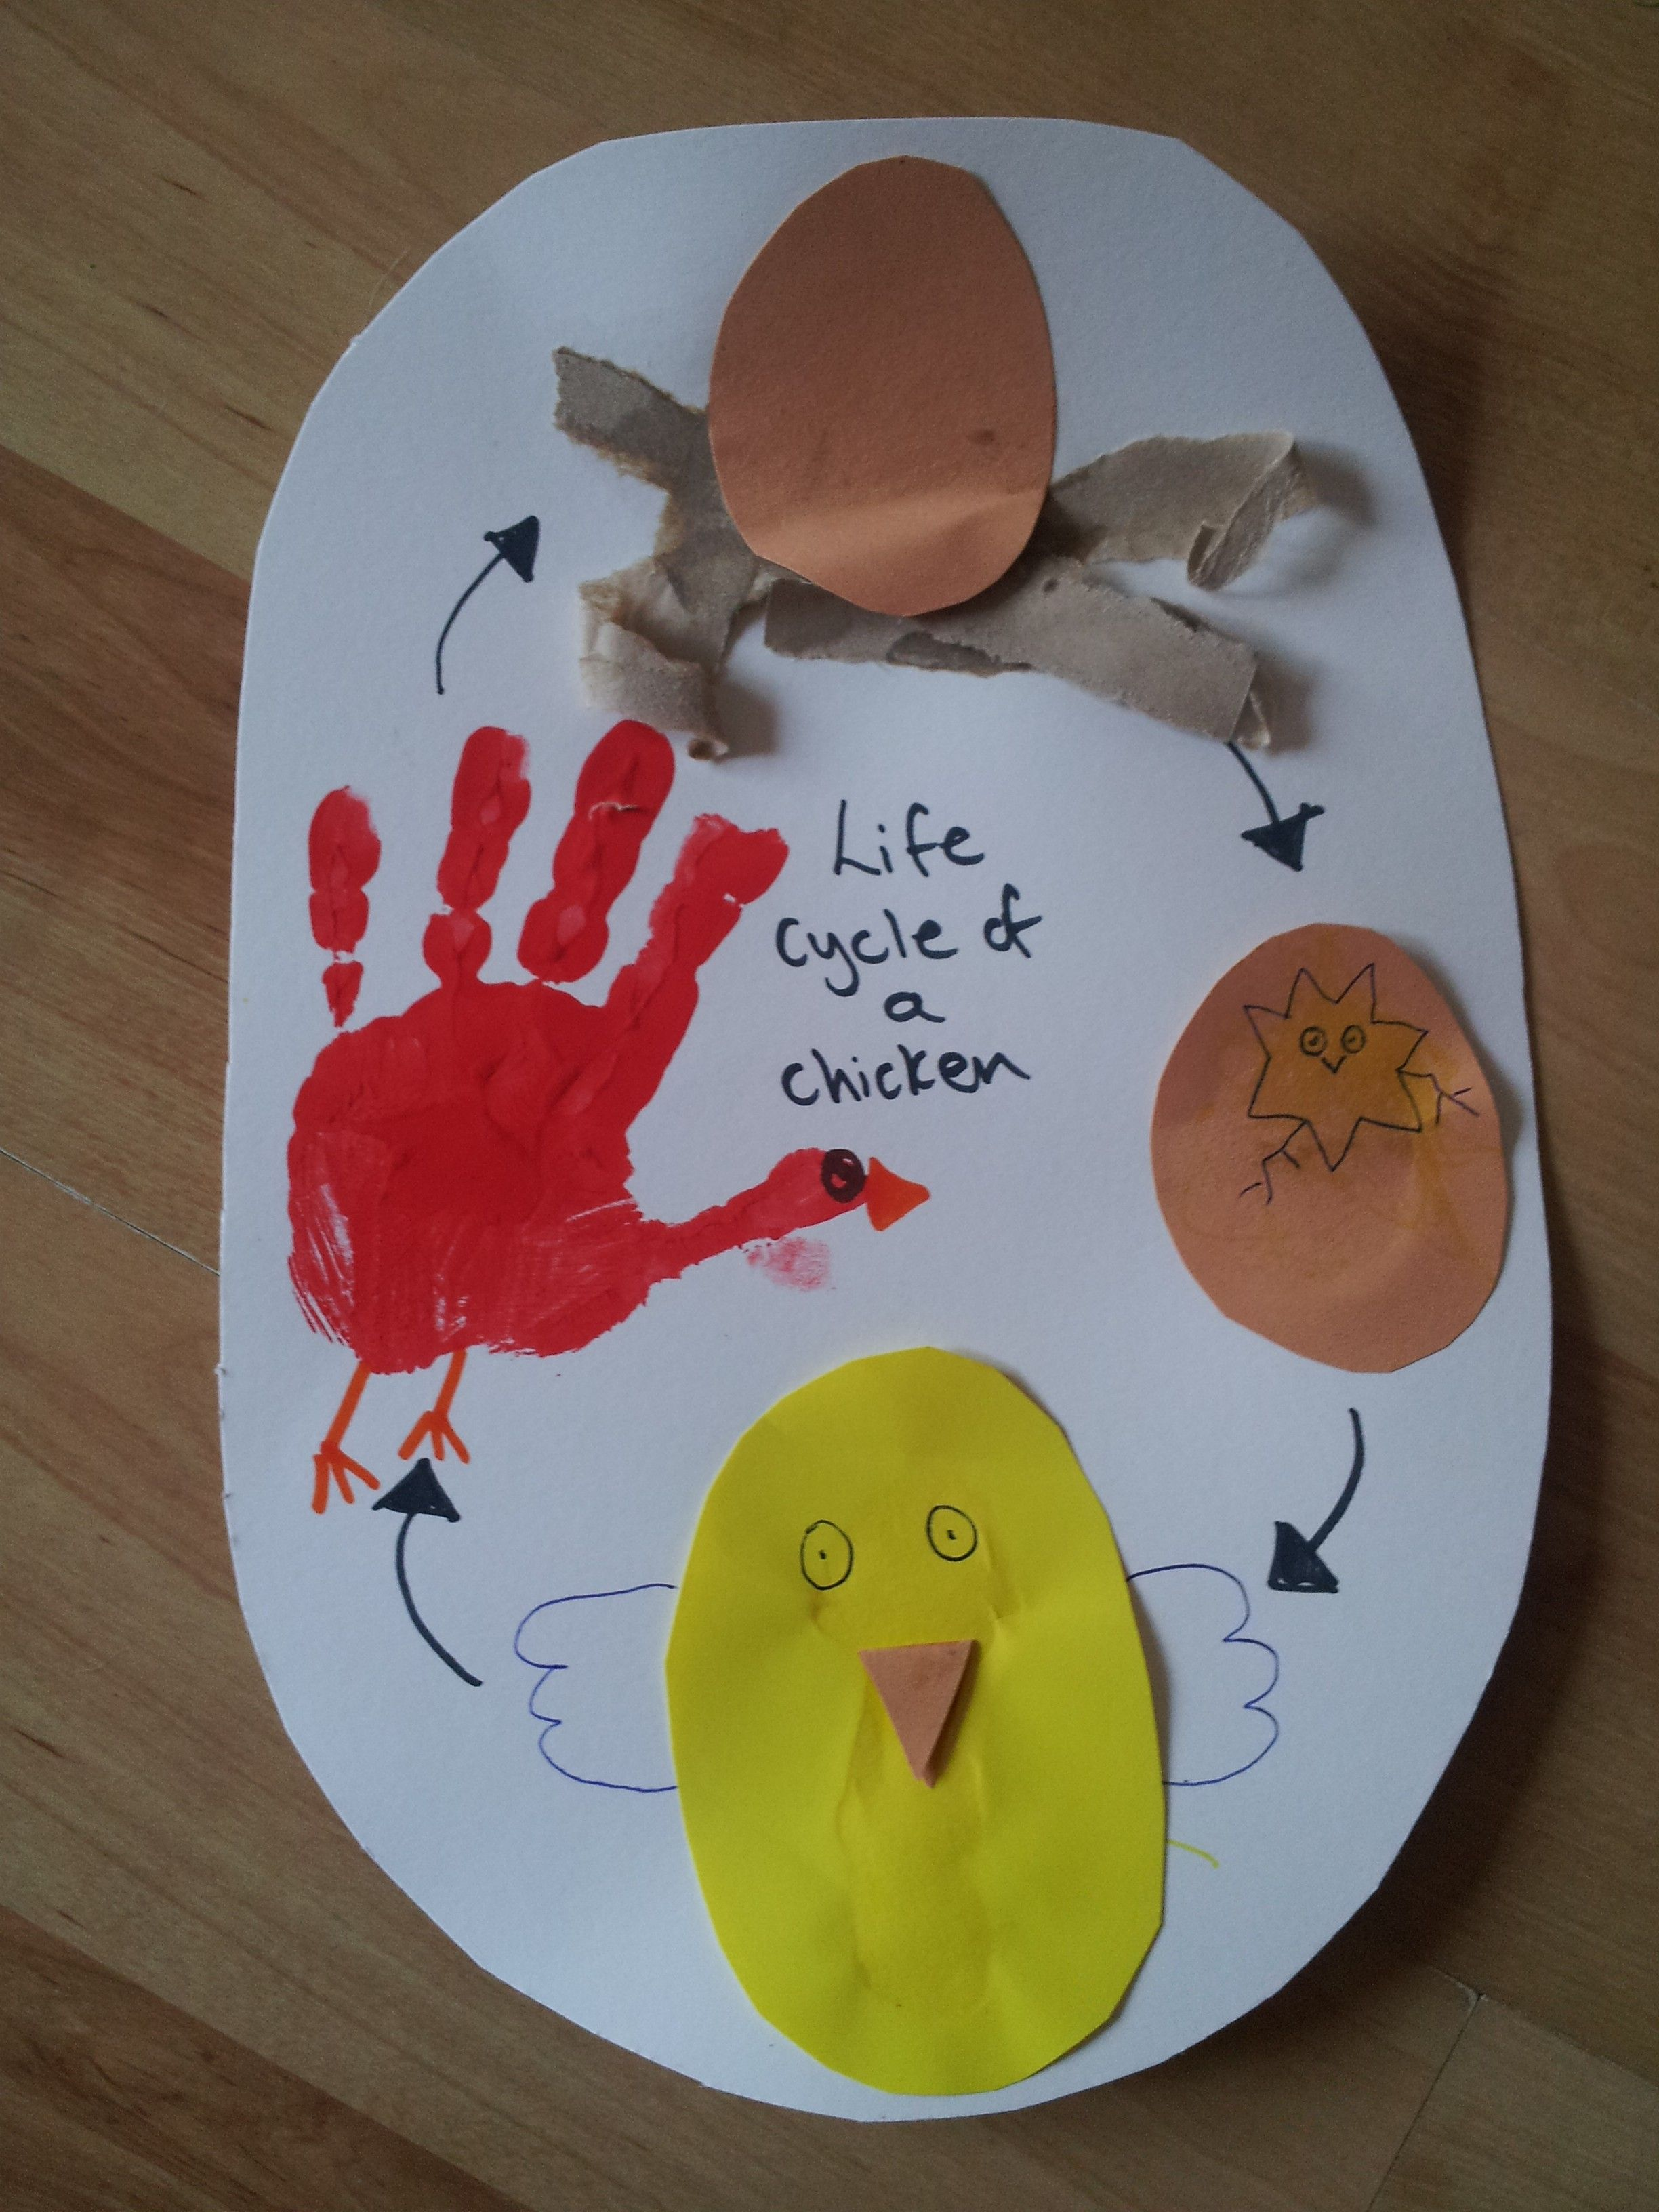 Fun Chicken Life Cycle Educational Craft